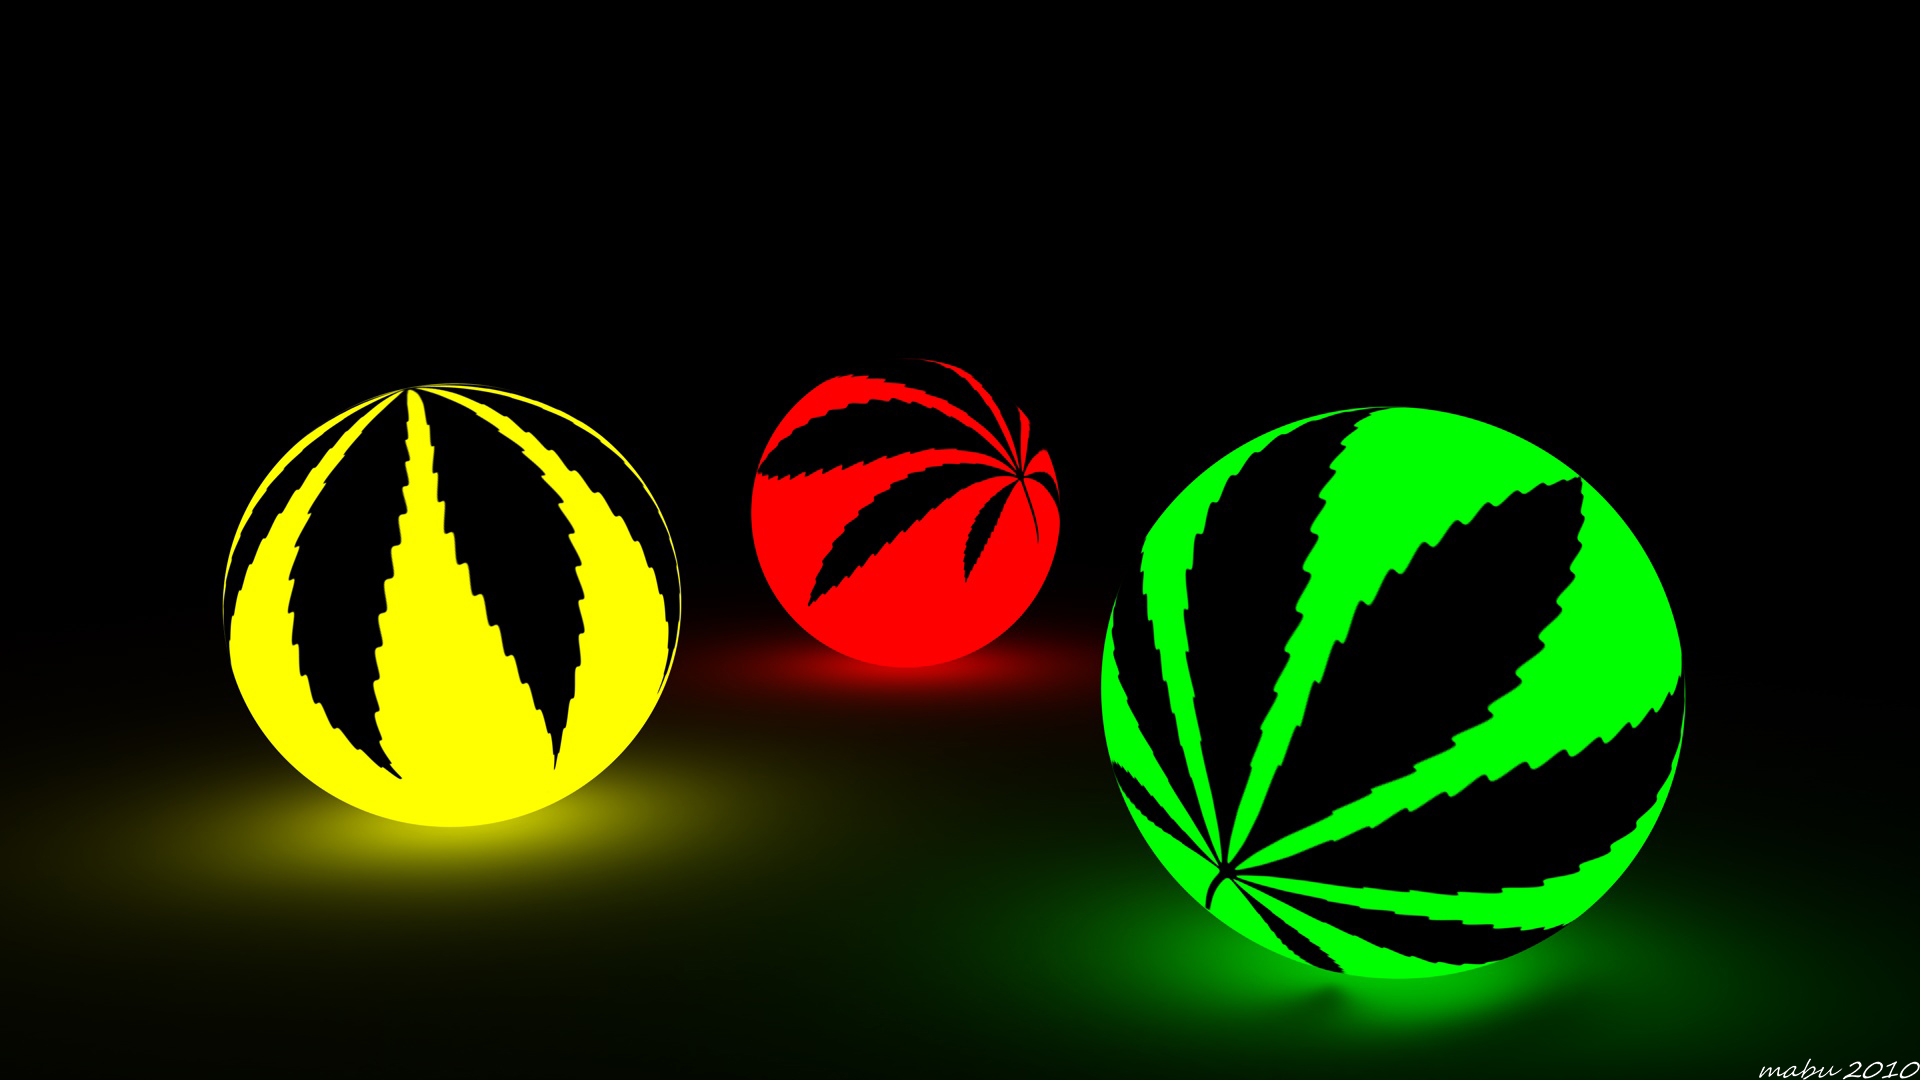 Weed HD Wallpaper 1920x1080 ImageBankbiz 1920x1080